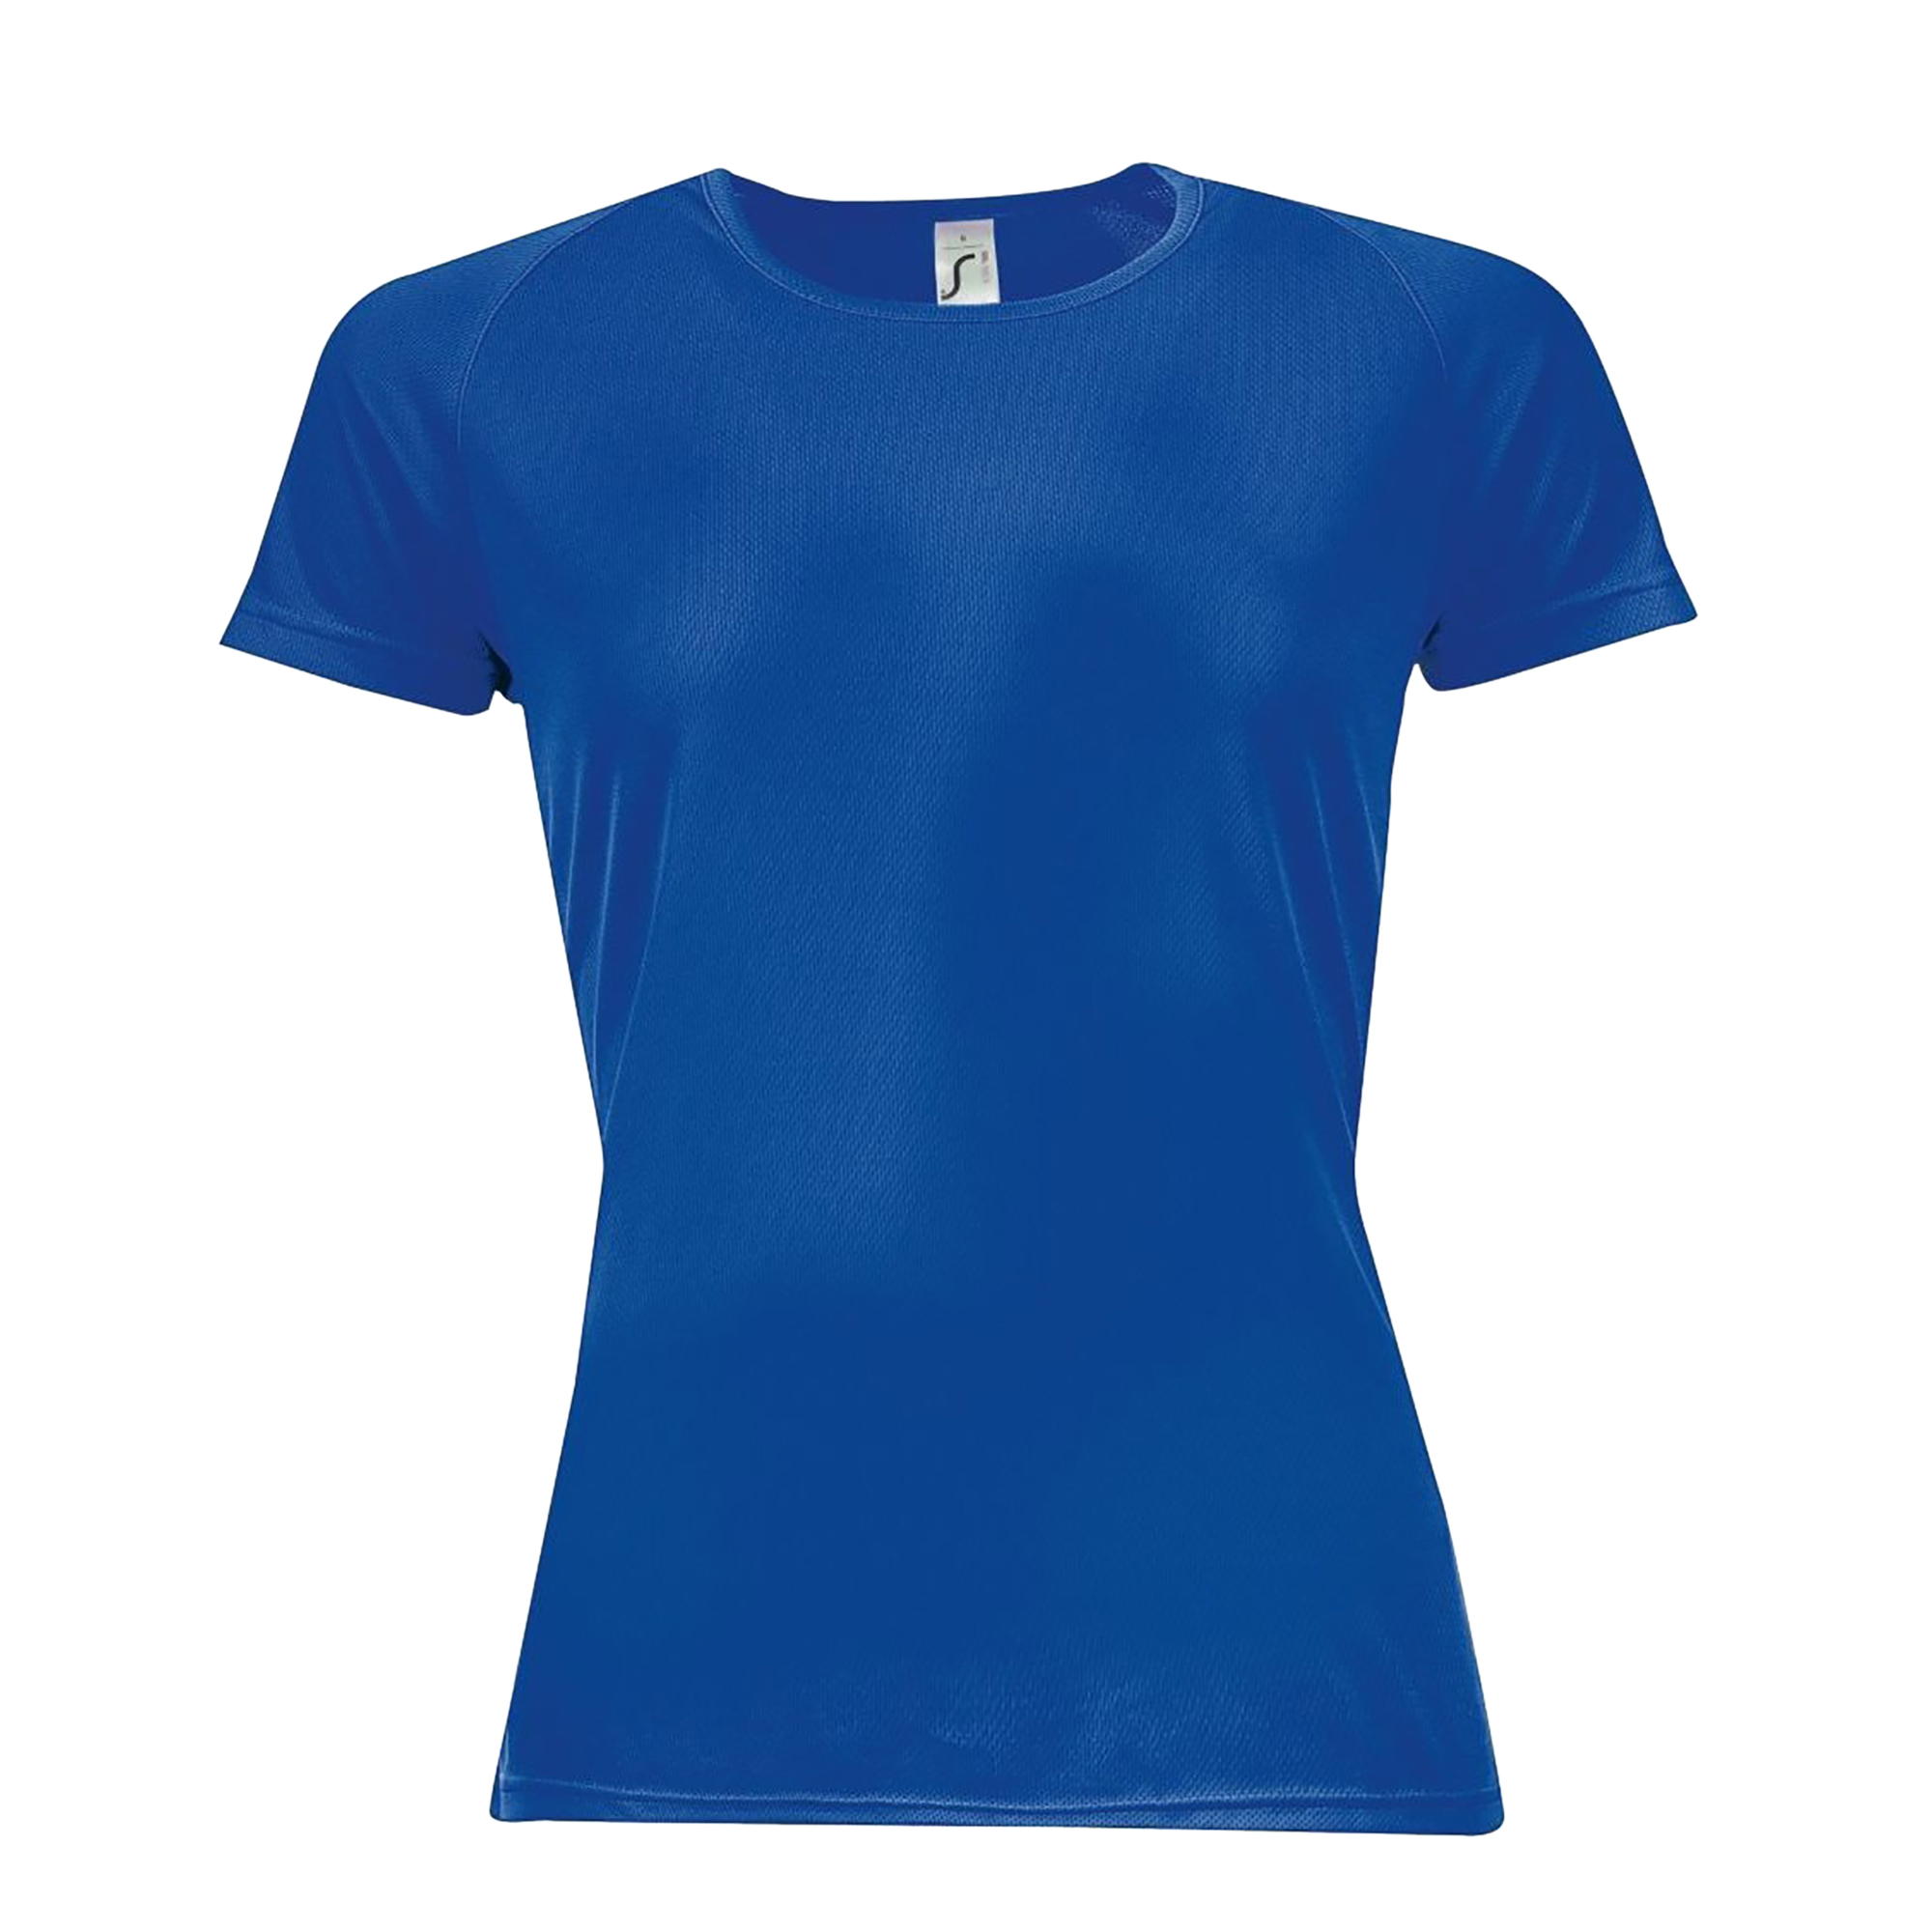 SOLS Womens/Ladies Sporty Short Sleeve T-Shirt (L) (Royal Blue)